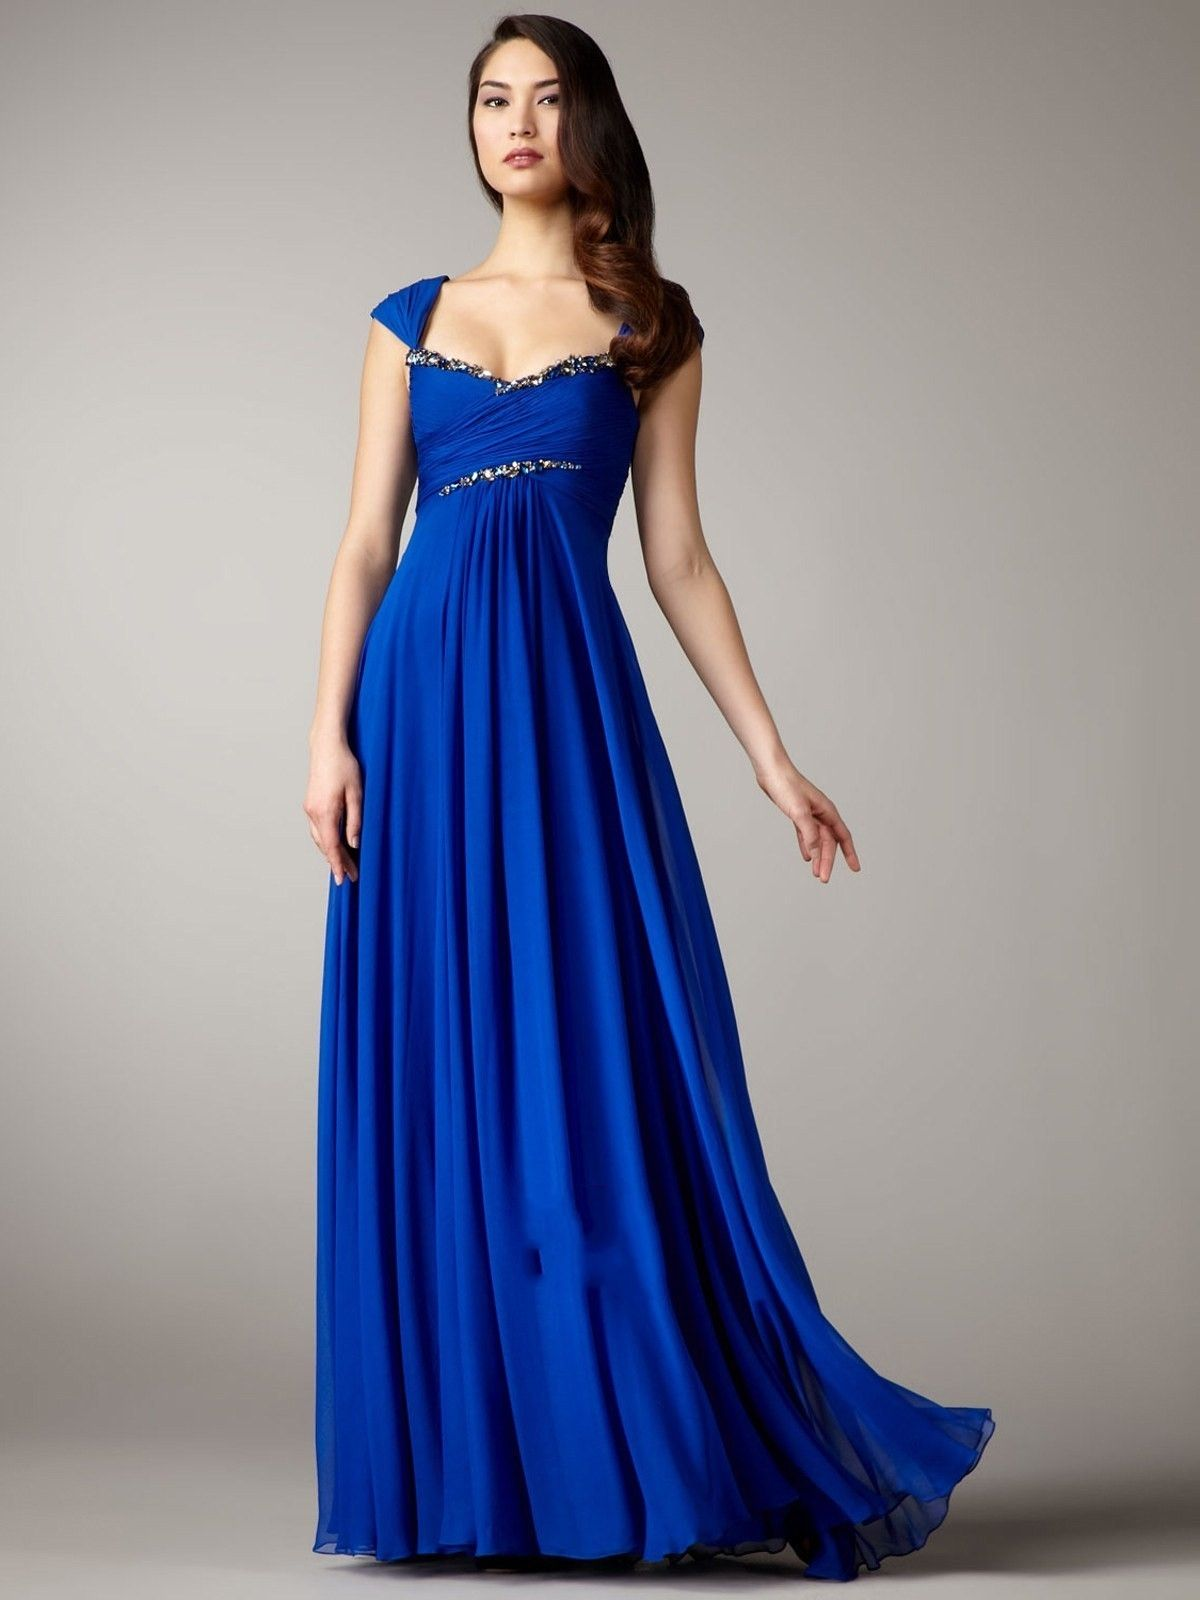 bridesmaid dresses in royal blue | Top 50 Royal-Blue Bridesmaid ...